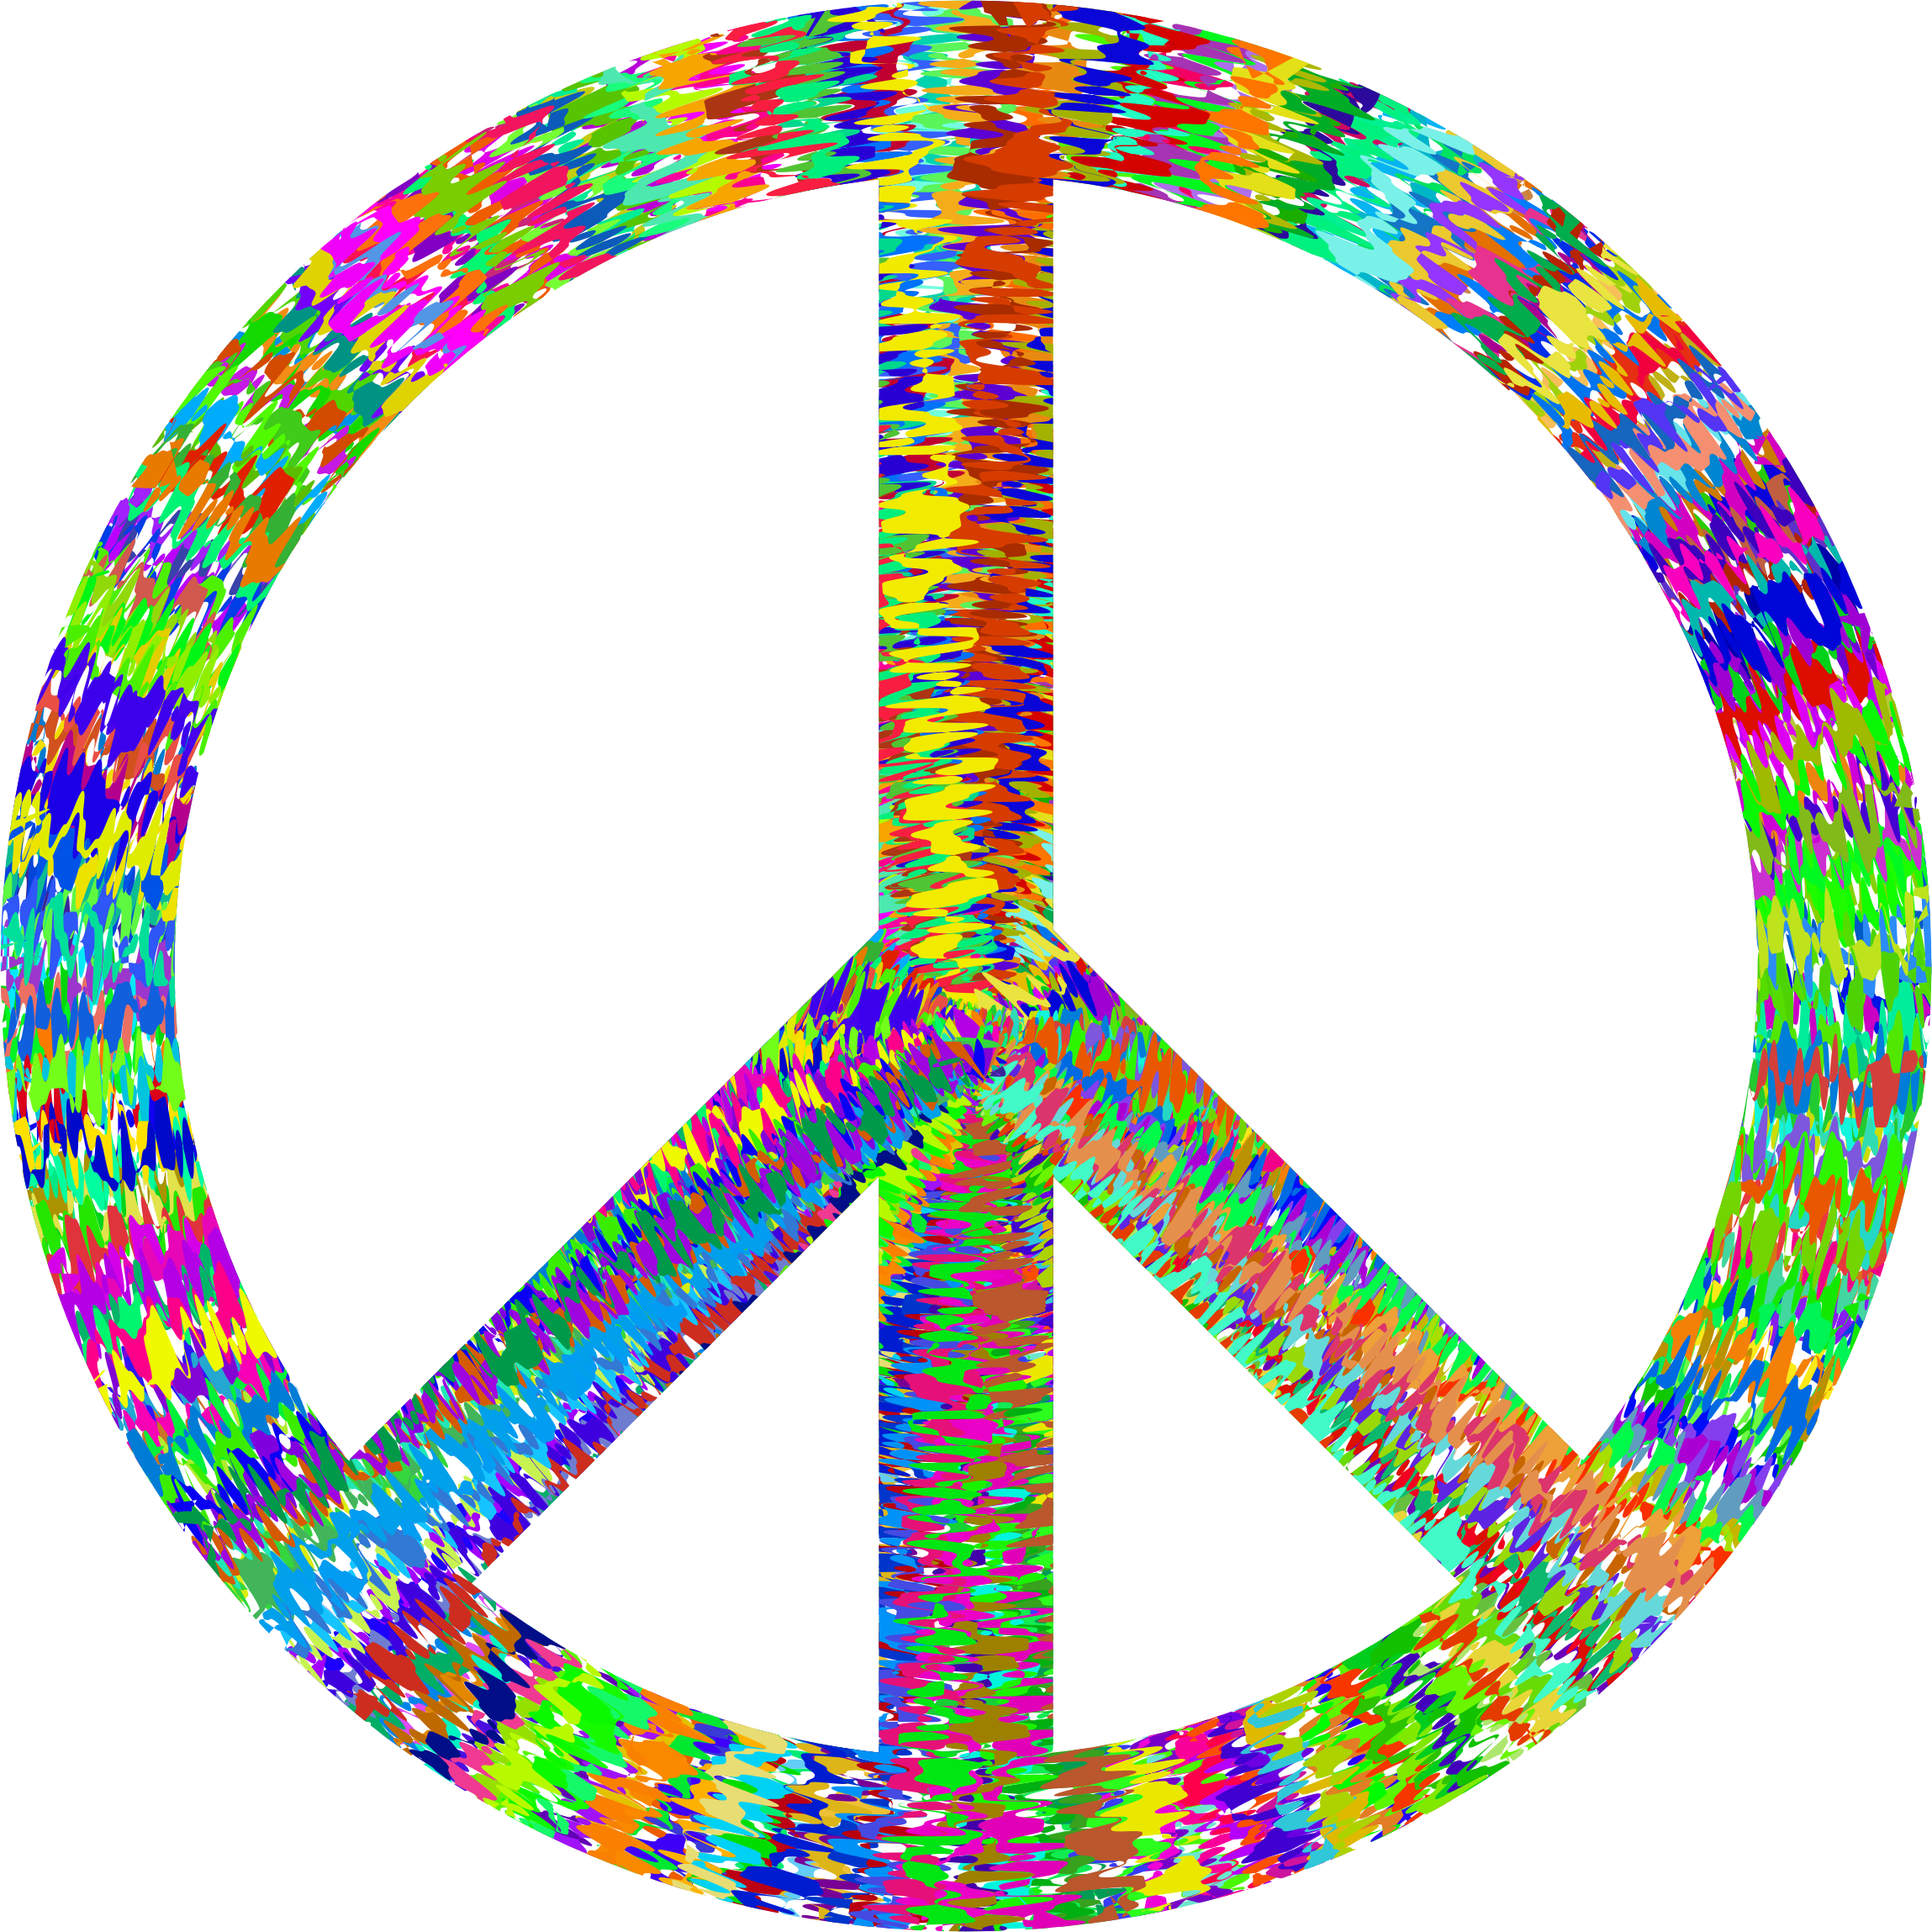 Groovy Peace Sign by GDJ